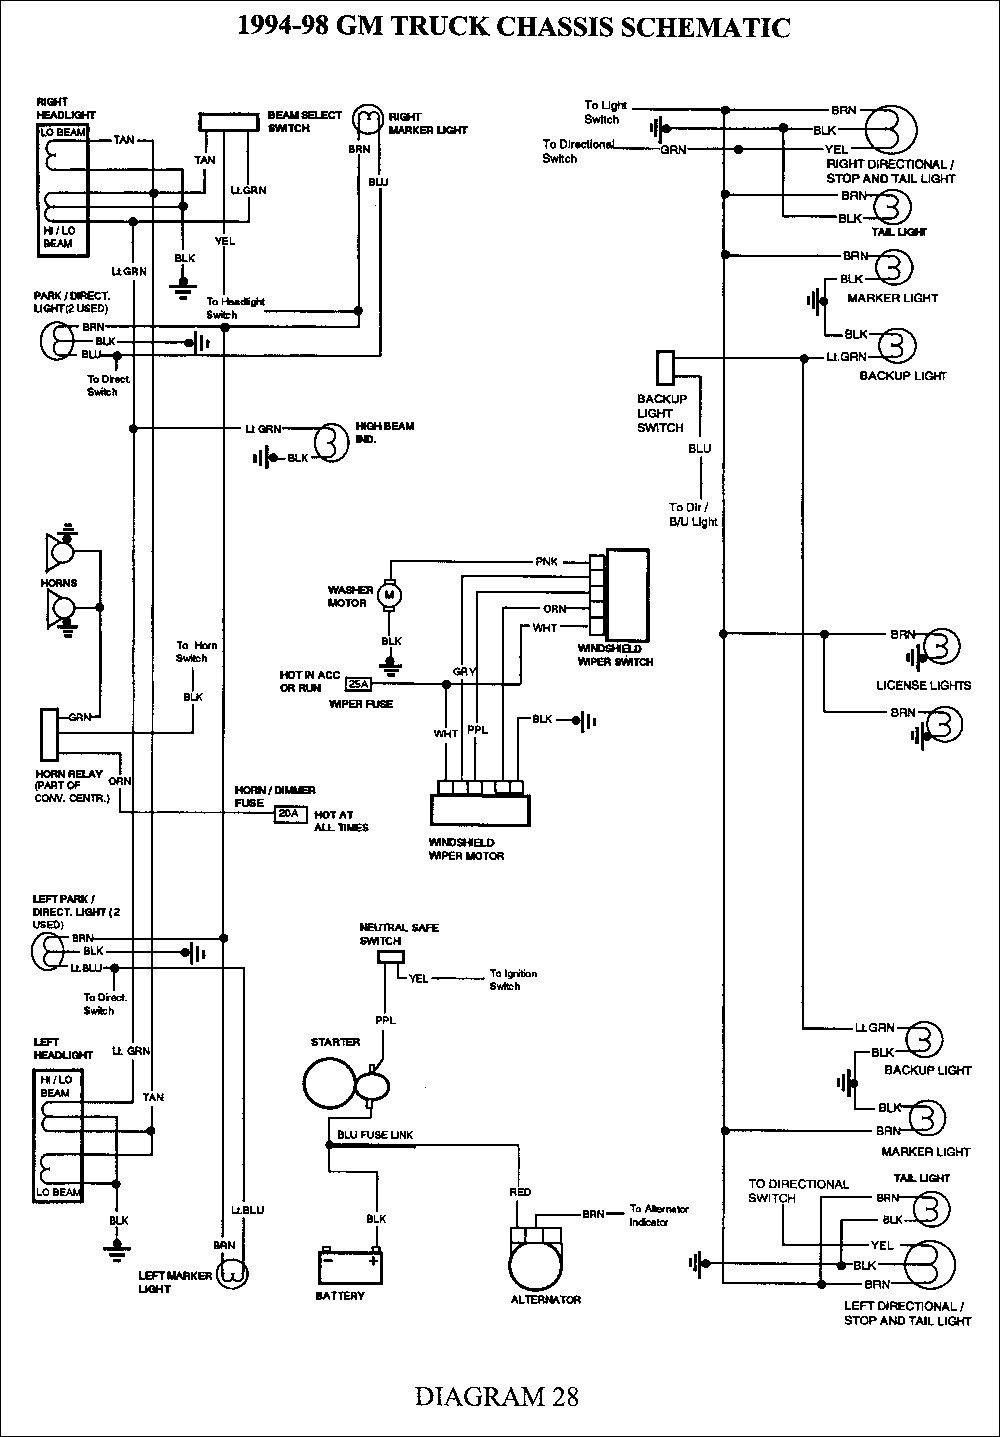 hight resolution of 1989 chevy s10 wiring diagram on 2000 blazer trailer wiring diagram chevrolet s10 wiring diagram pin 2000 s10 wiring schematic